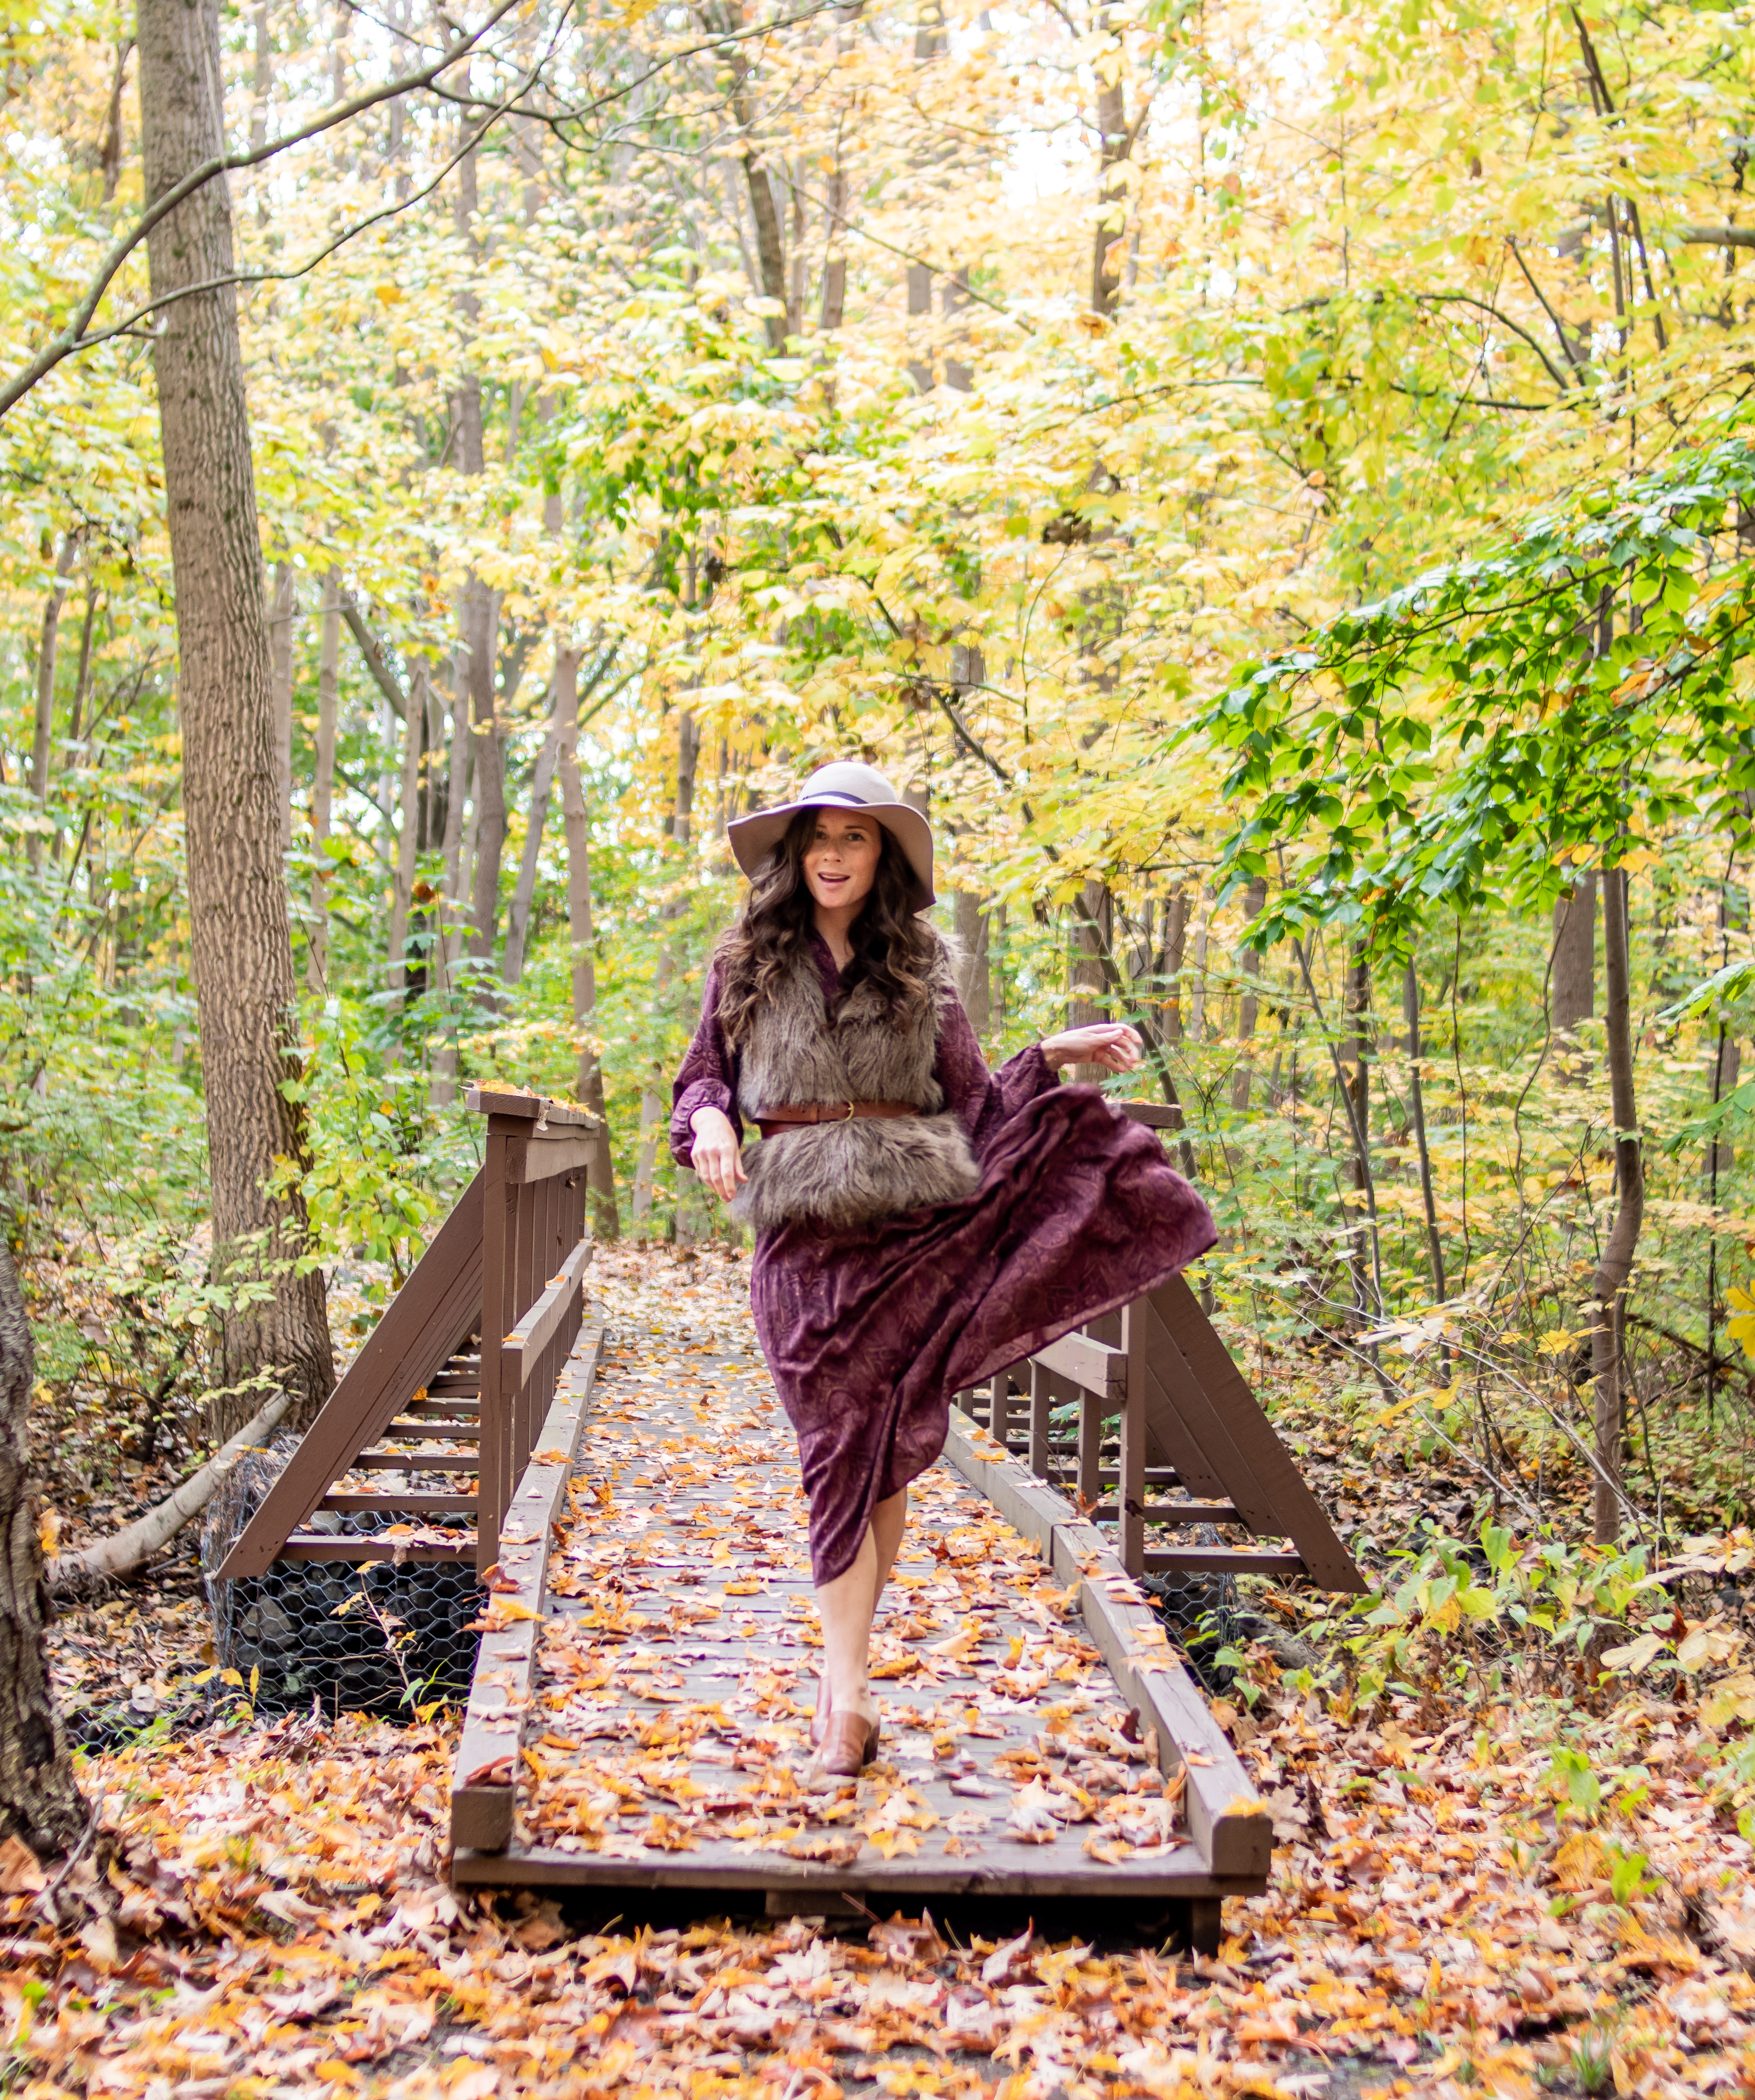 caitlin houston in maroon dress with fur vest and hat for fall